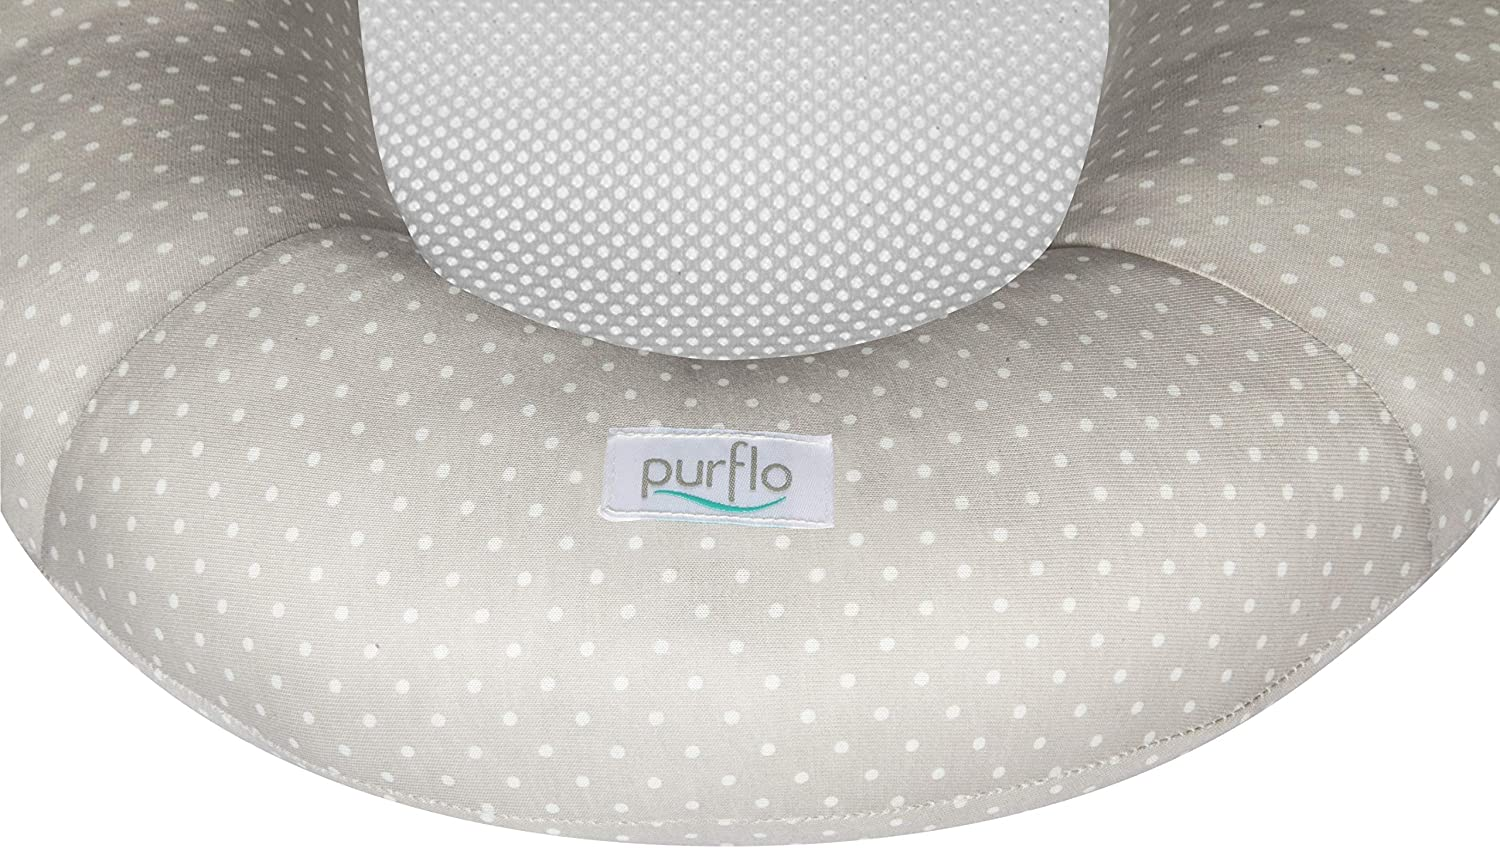 PurFlo Baby Newborn Breathable Sleep Nest 0-6M in Elephant